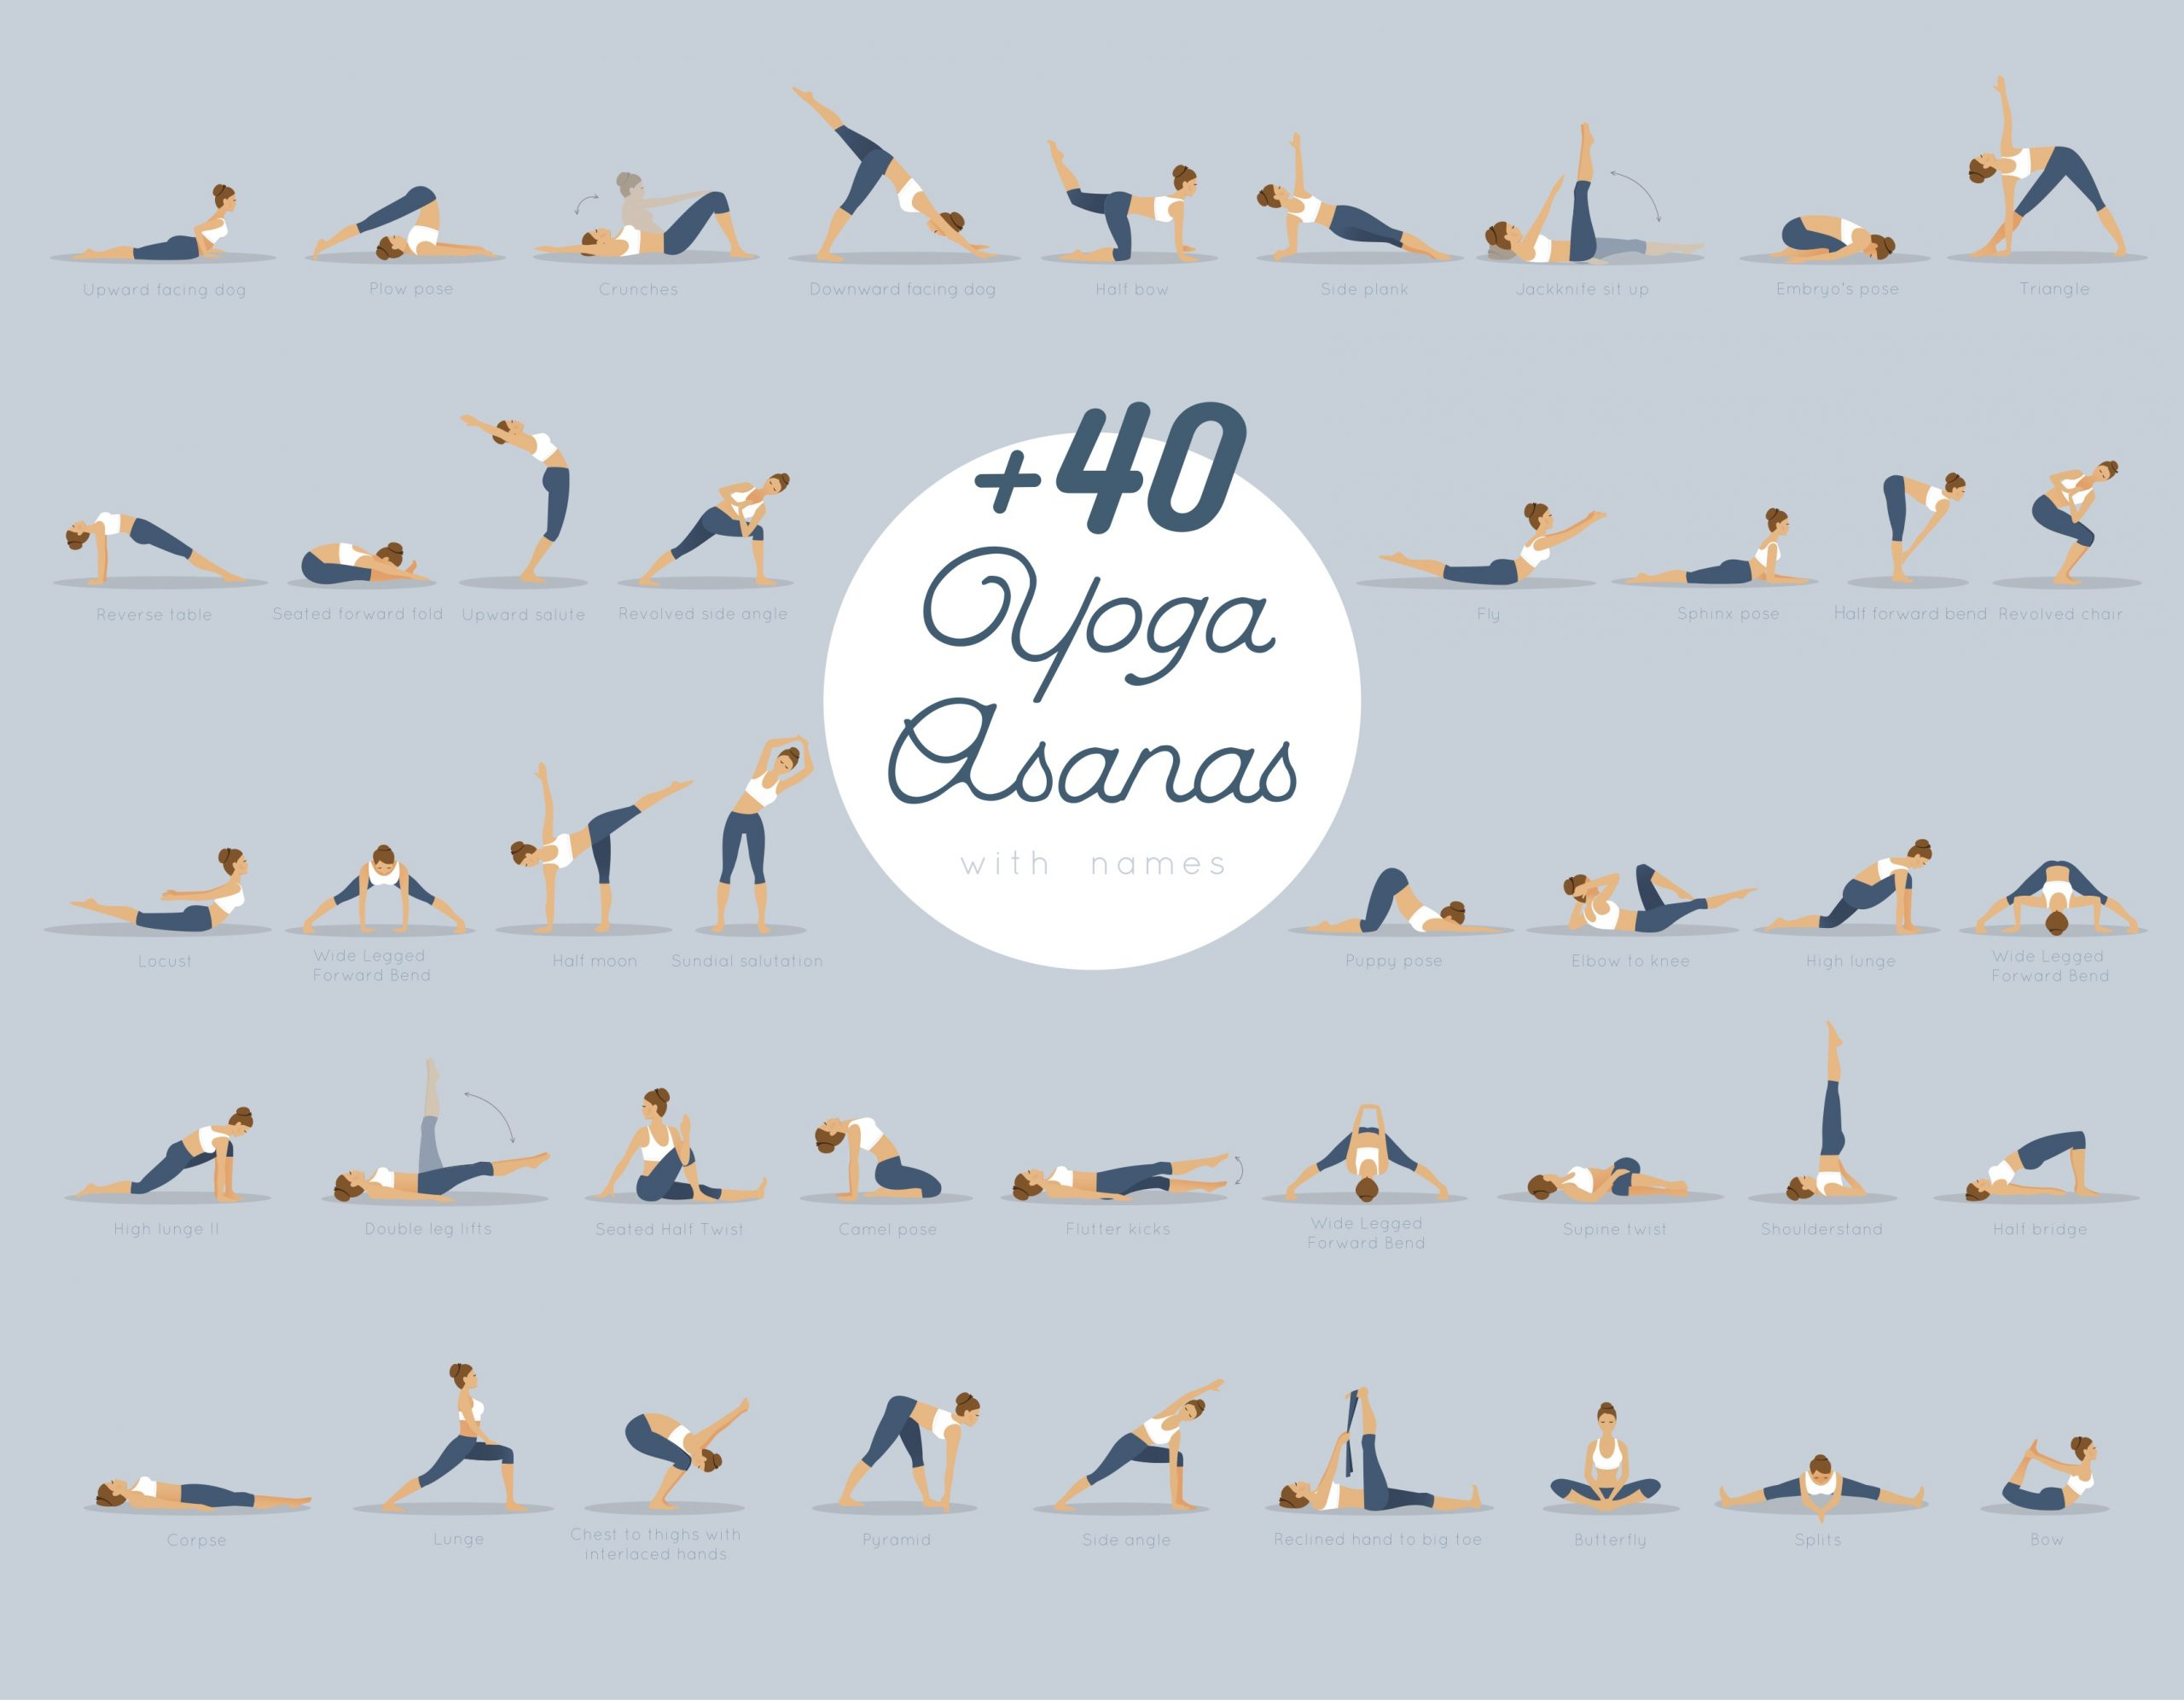 40 yoga poses with names